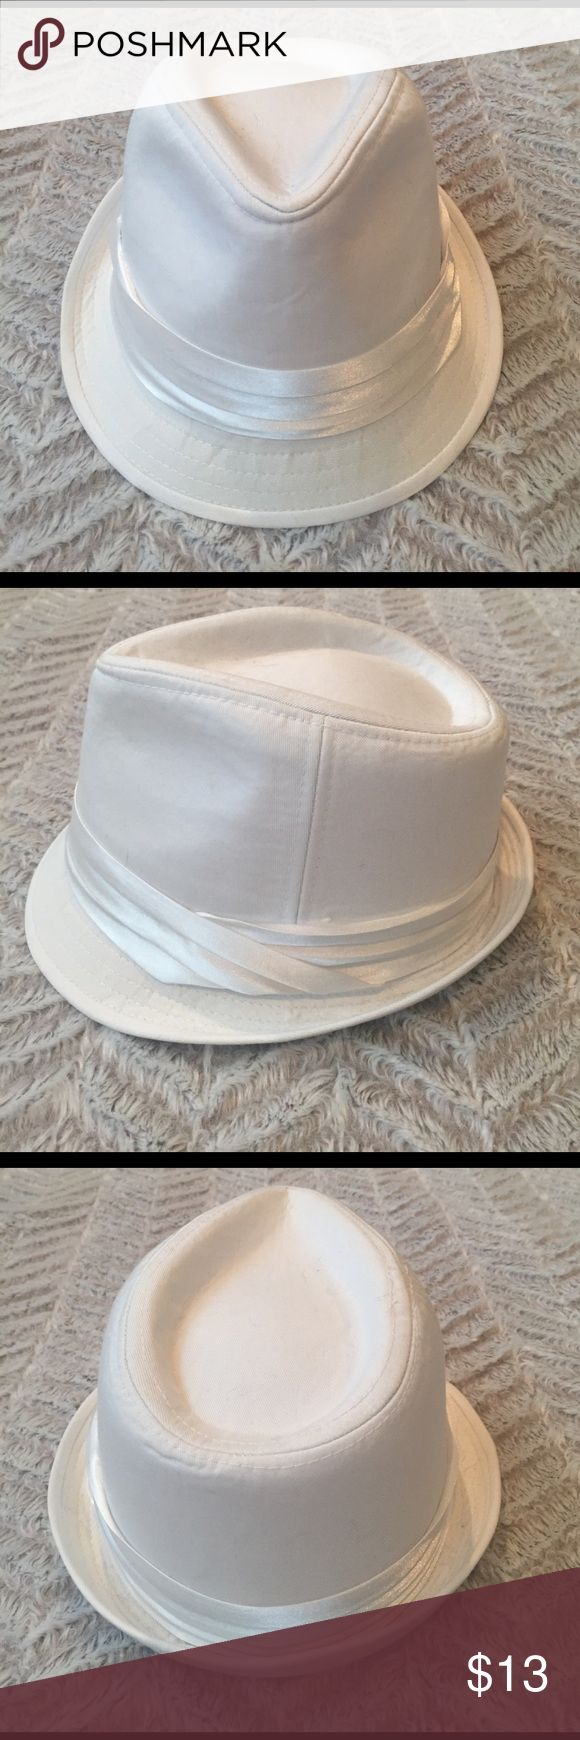 Arden B. Women's fedora hat This gorgeous white fedora hat was worn once and there is a some makeup stains on the inside lining. Otherwise this hat is in perfect condition on the outside. This is the perfect hat for summer! Arden B Accessories Hats